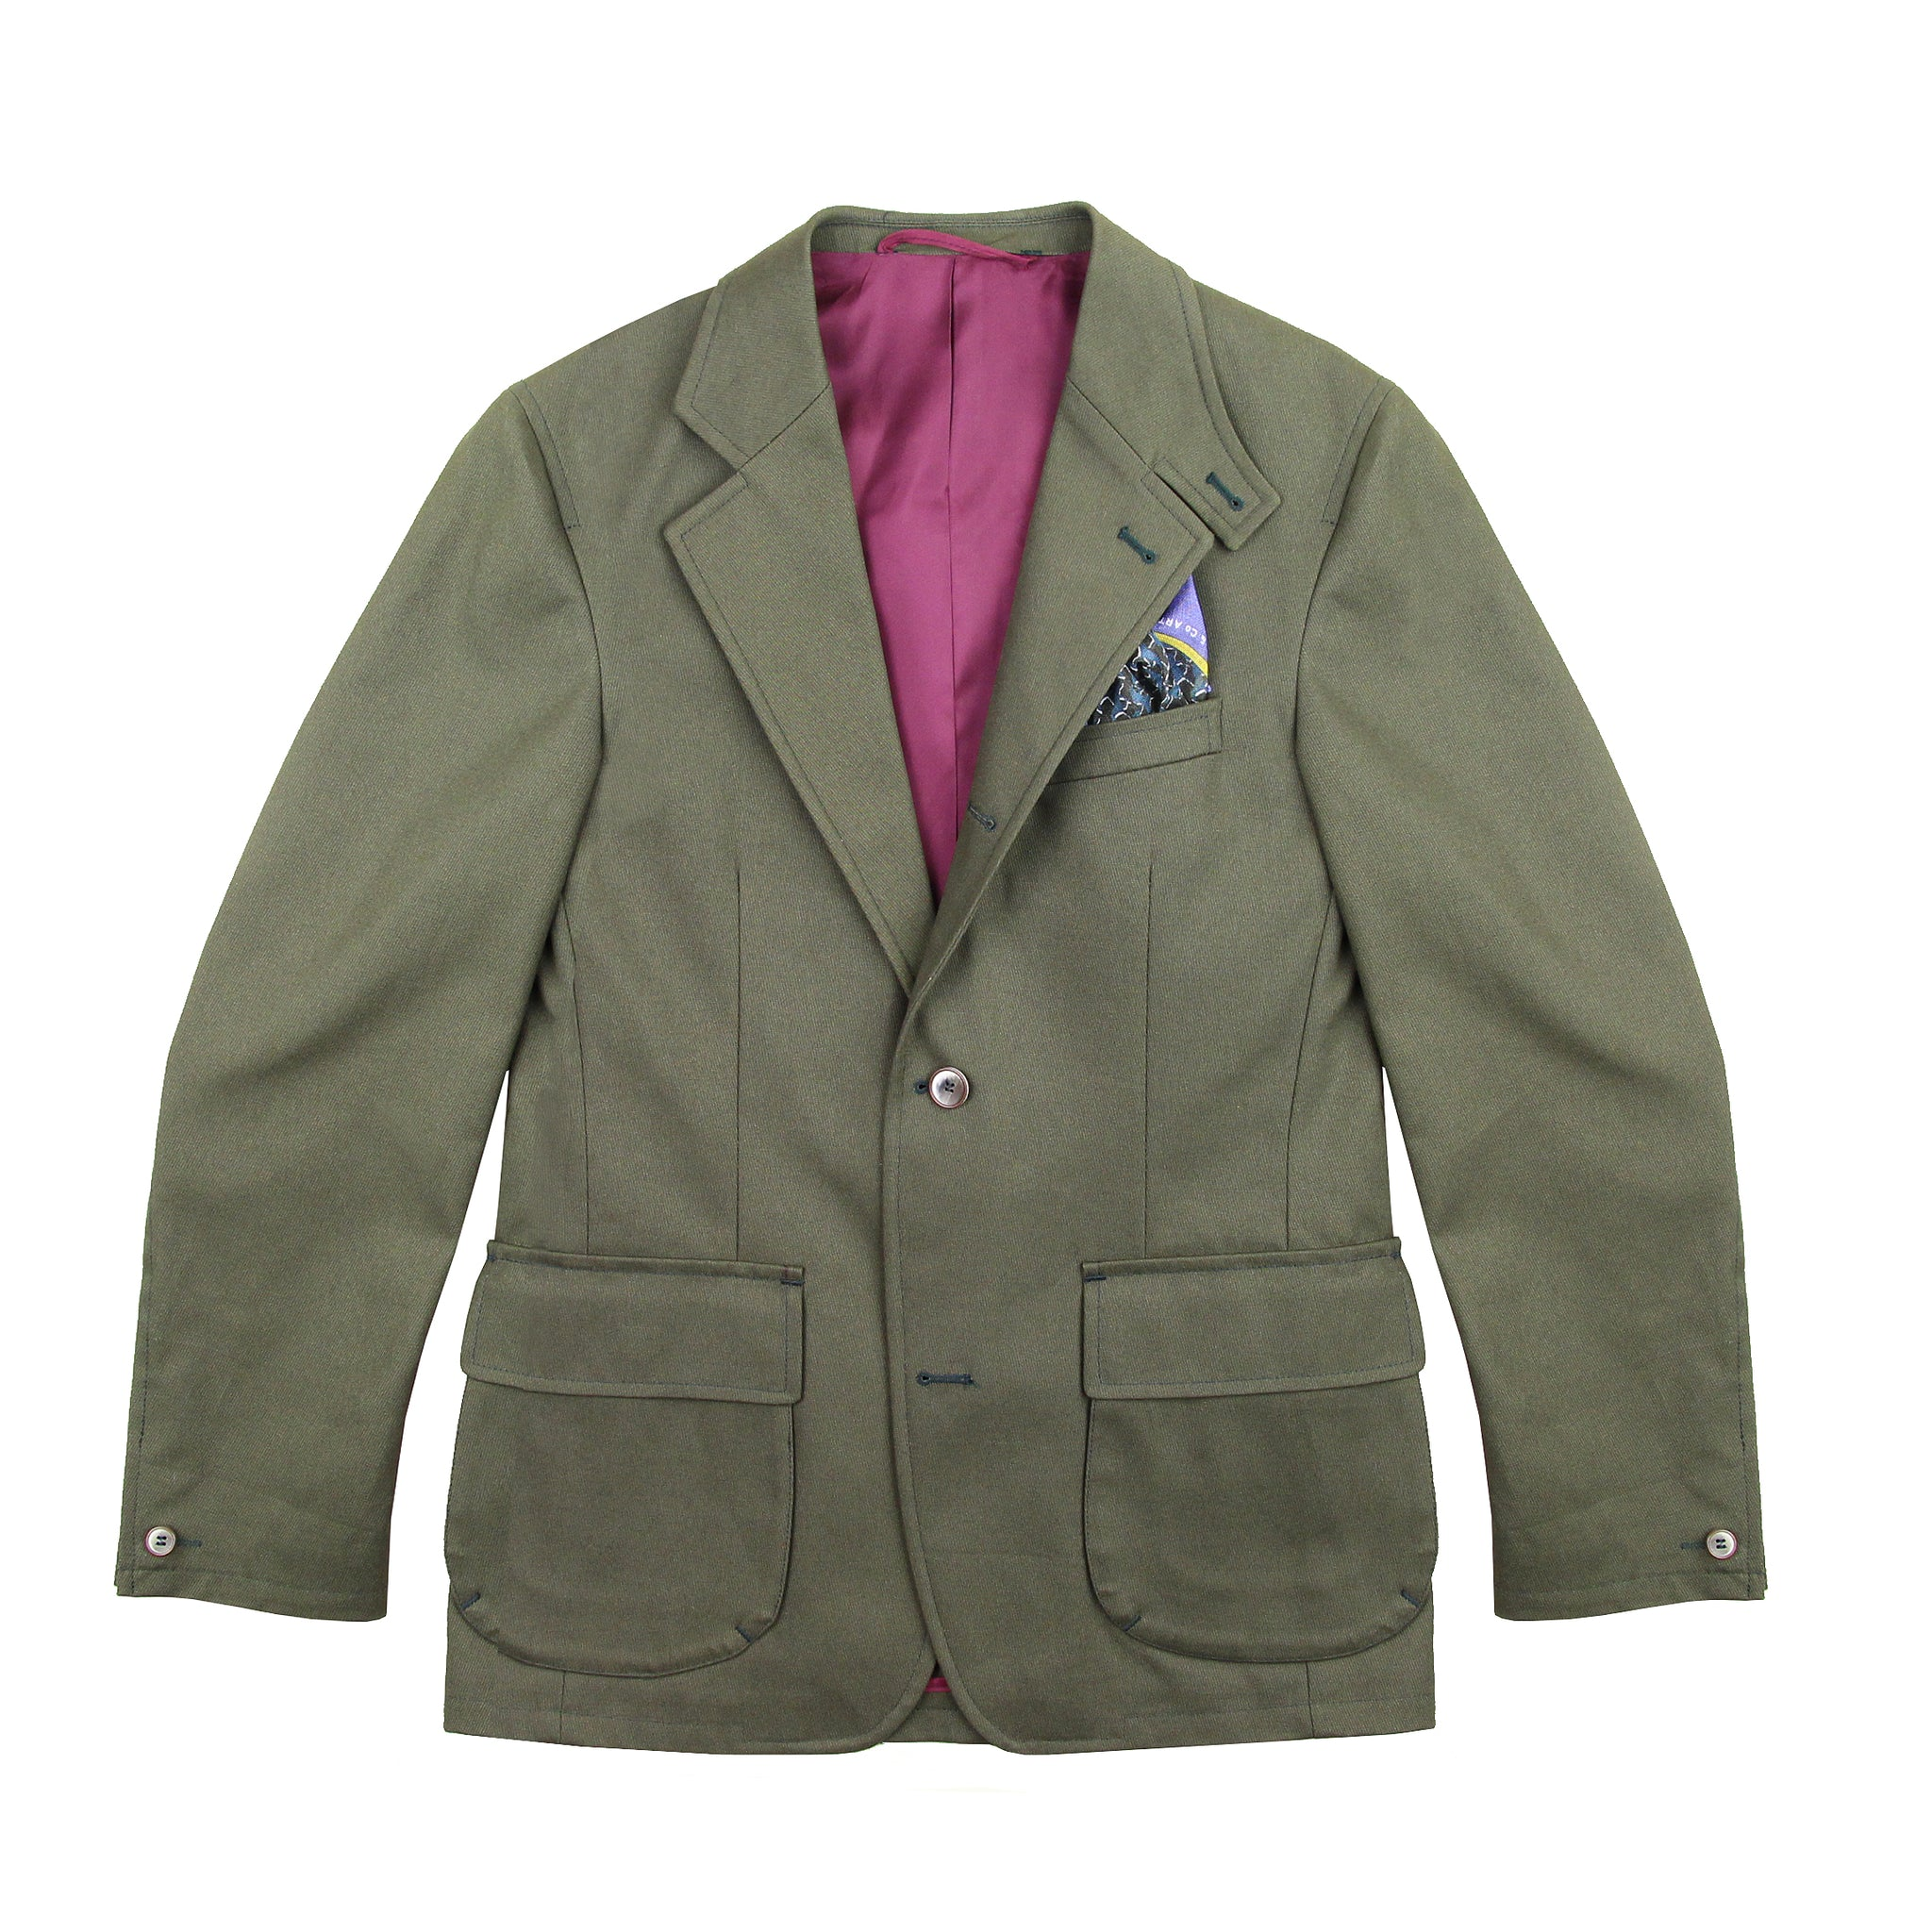 Veste Beaumont cavalry twill Olive